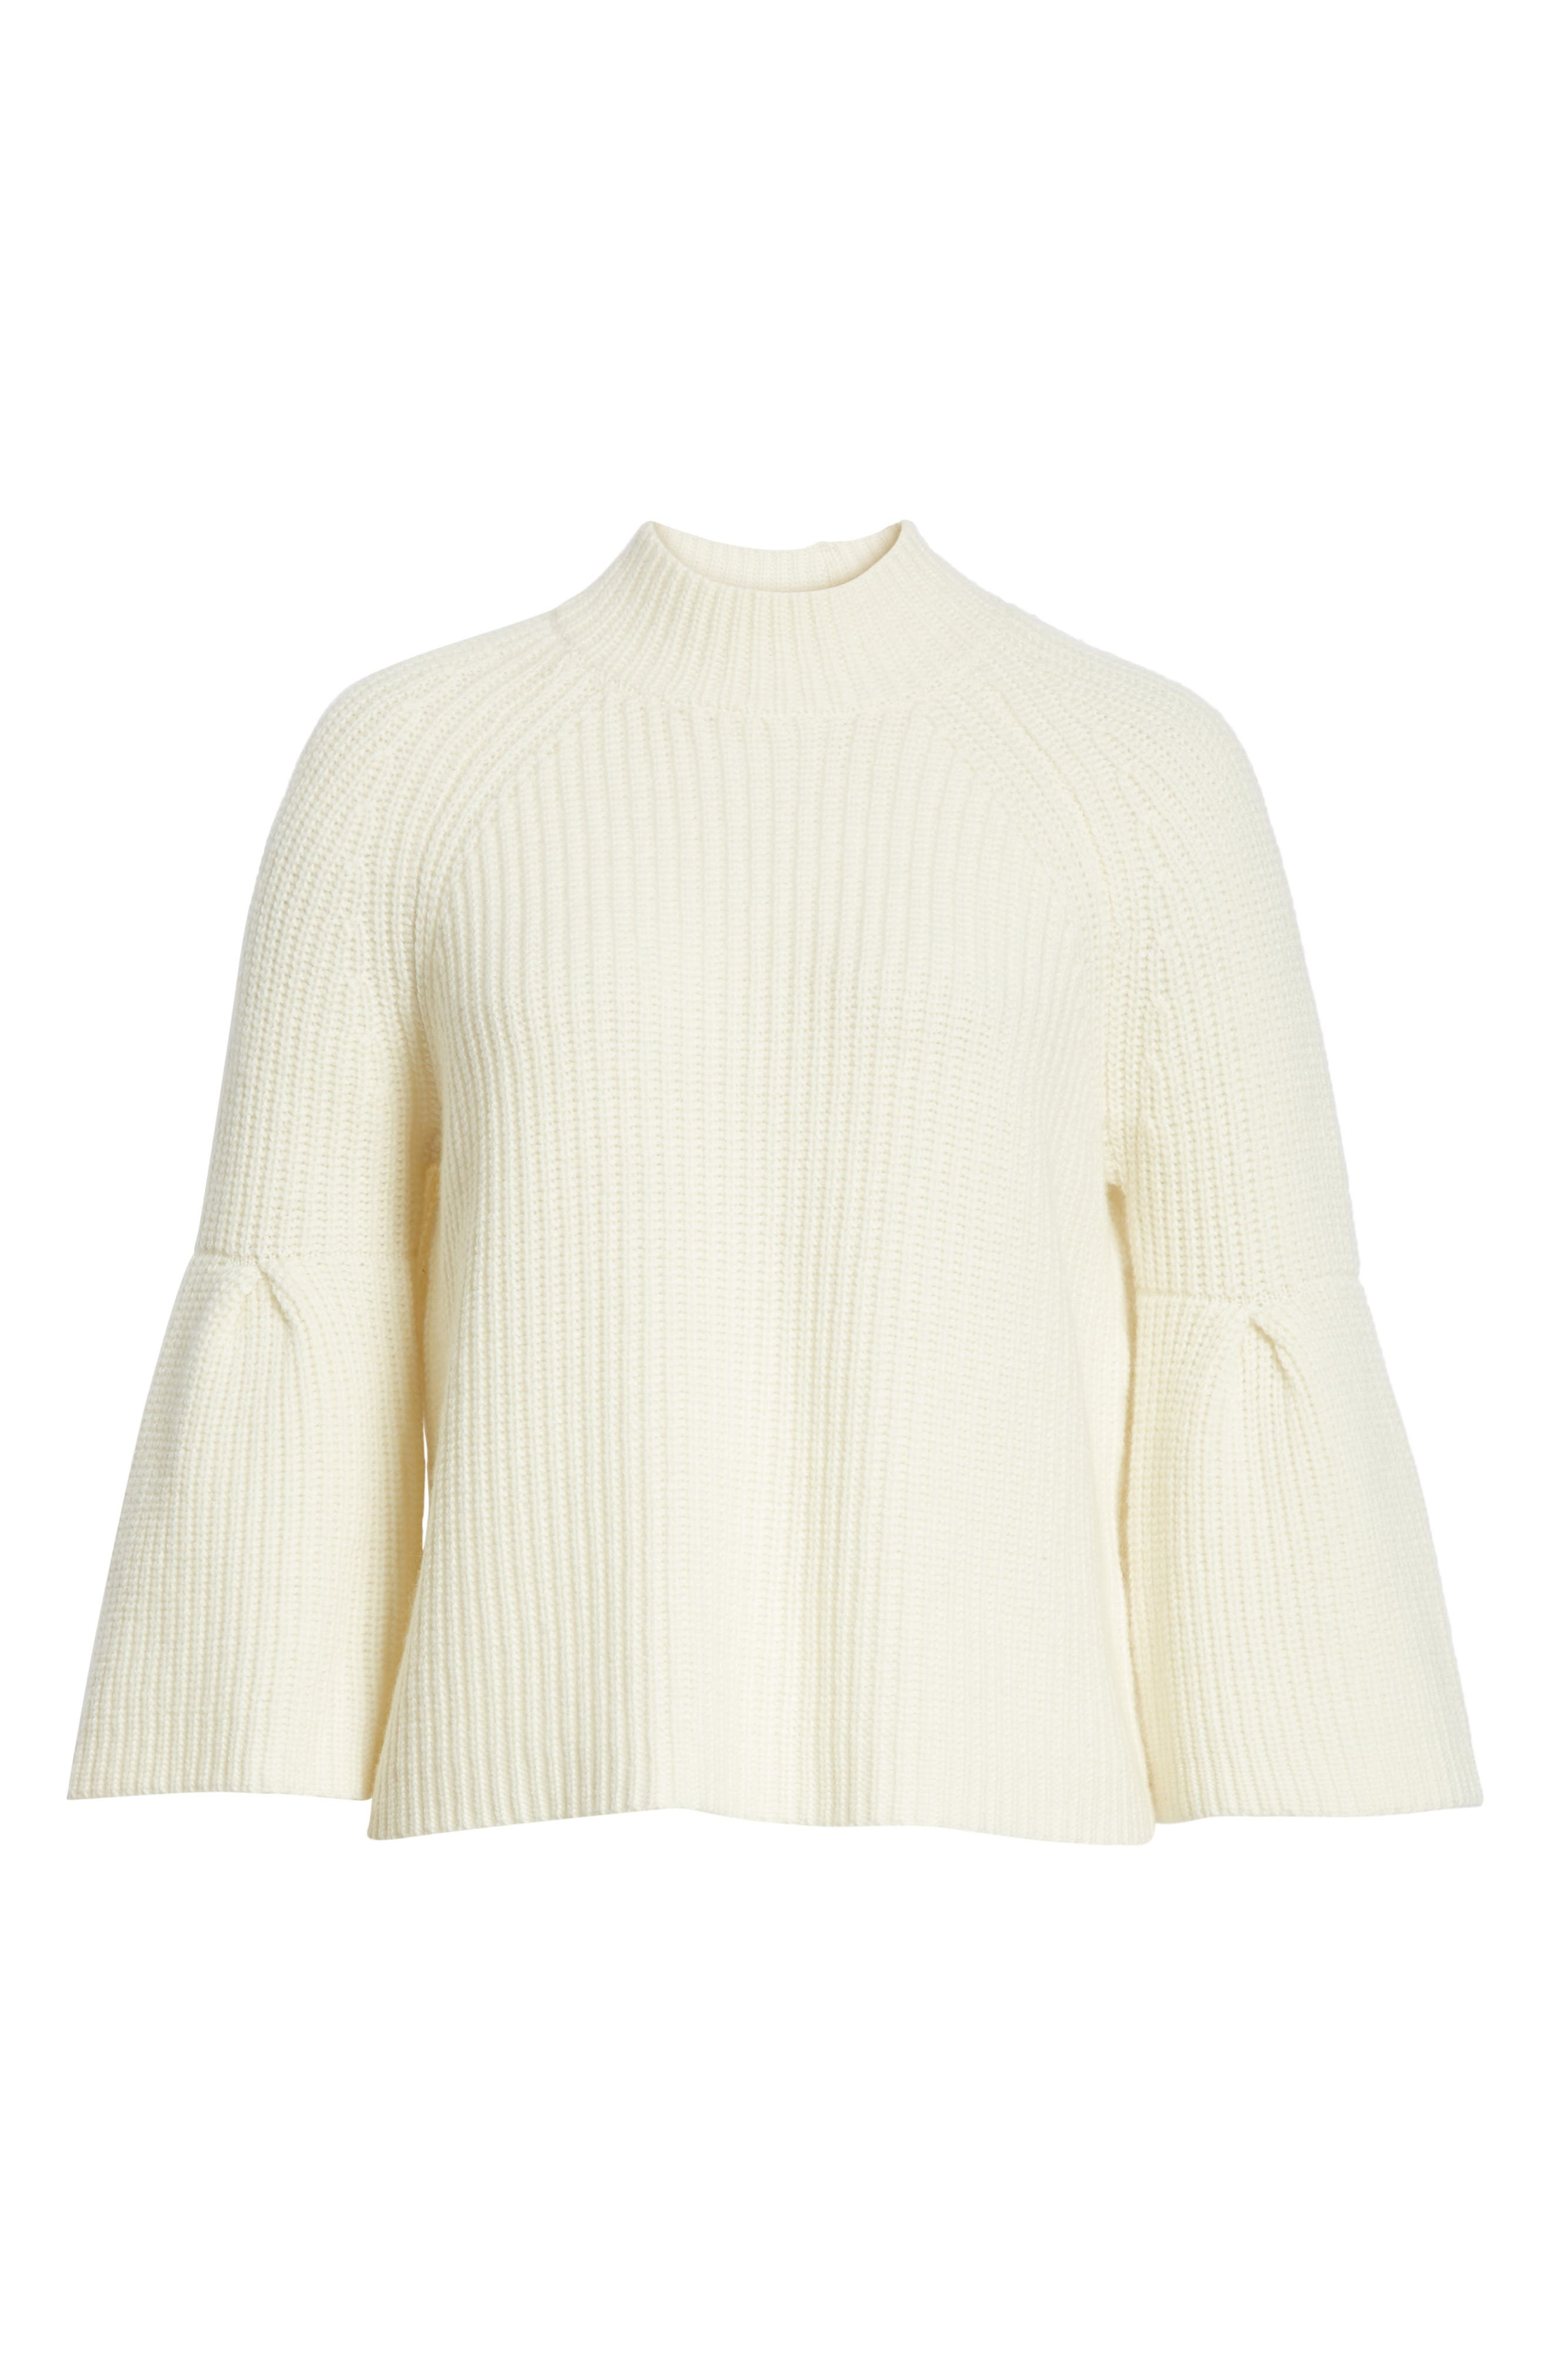 Ingrit Wool & Cashmere Sweater,                             Alternate thumbnail 6, color,                             114